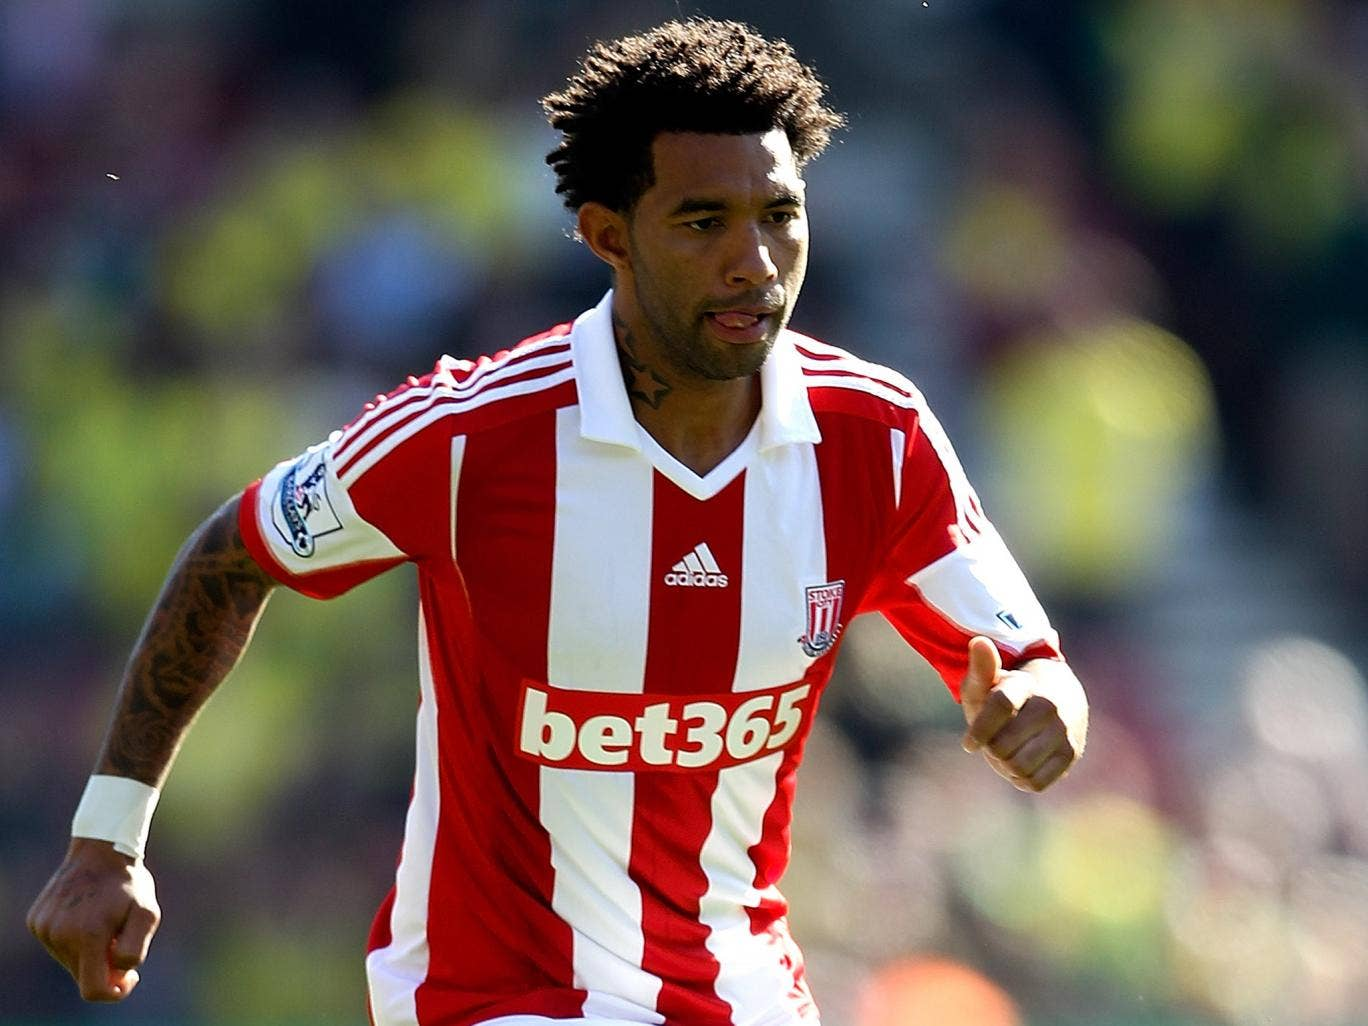 Jermaine Pennant has left Stoke with immediate effect, the club have confirmed